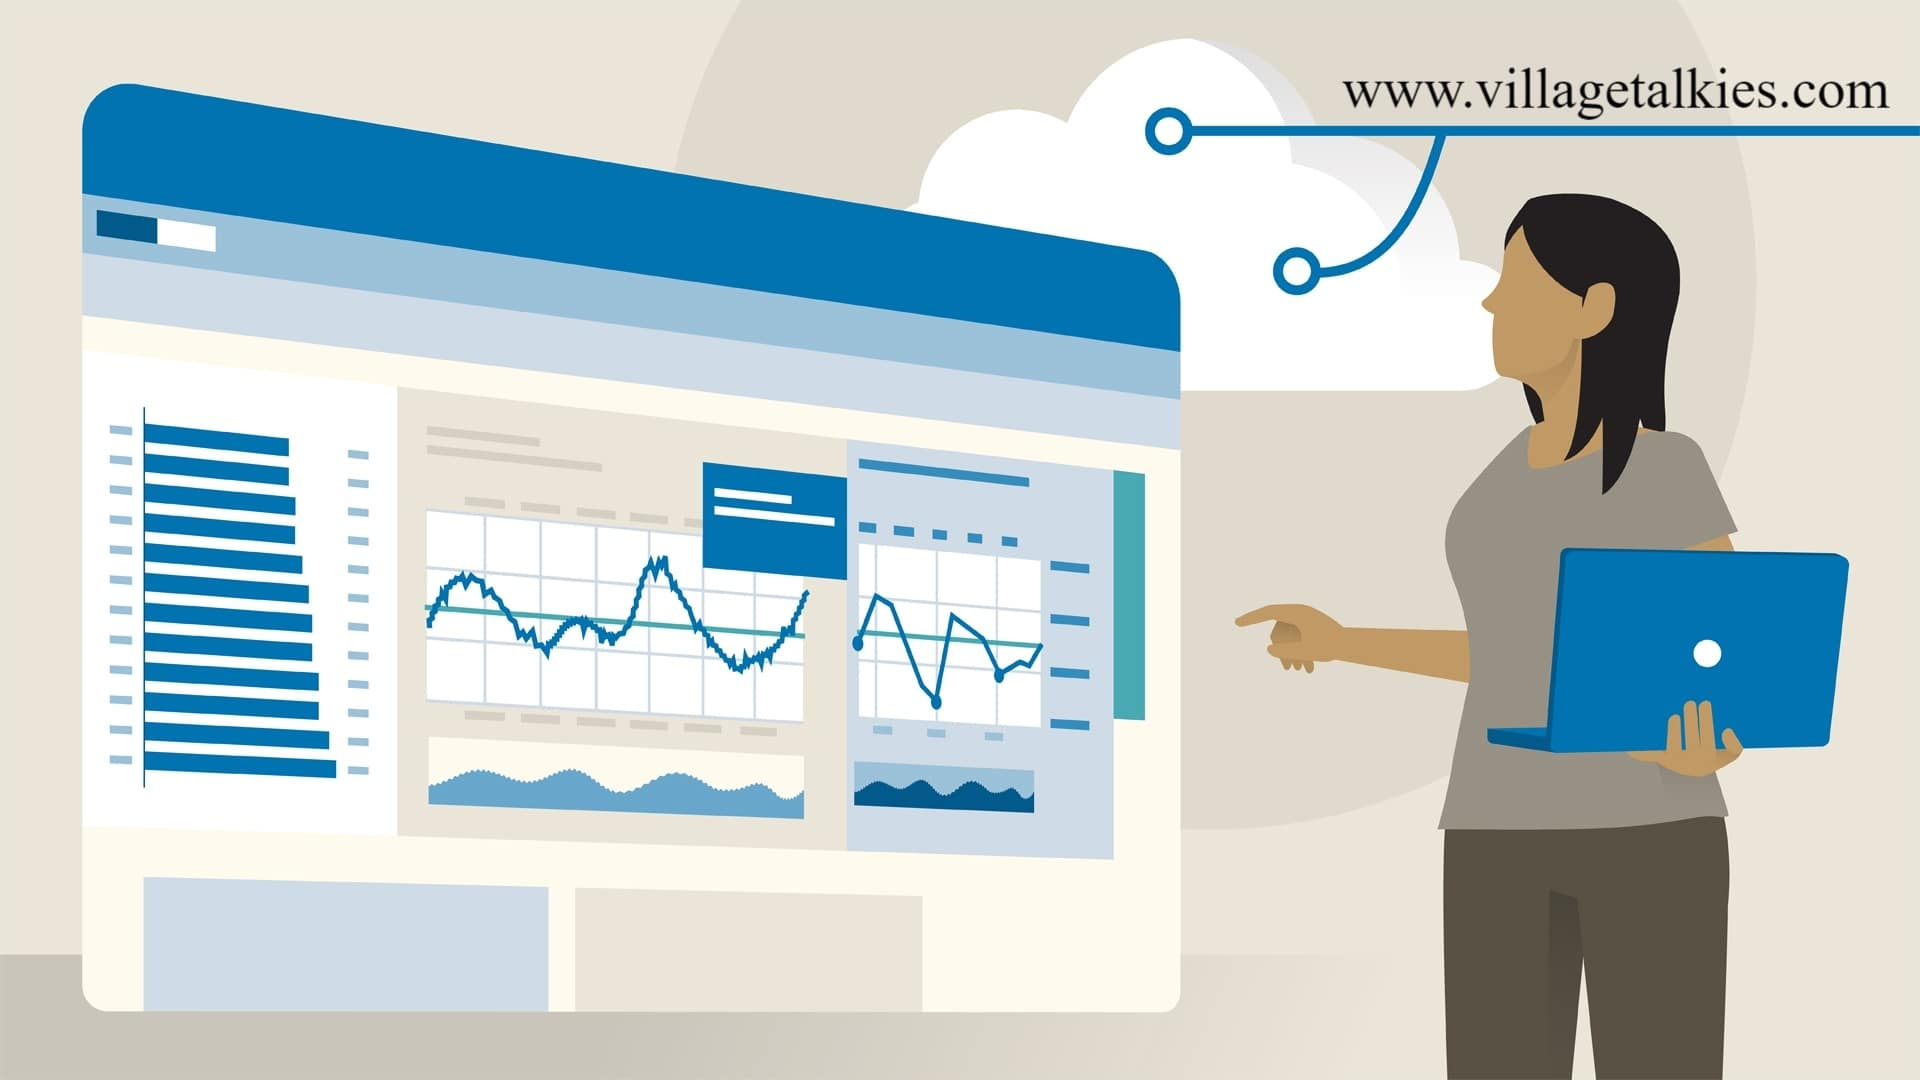 To make your explainer video effective and profitable